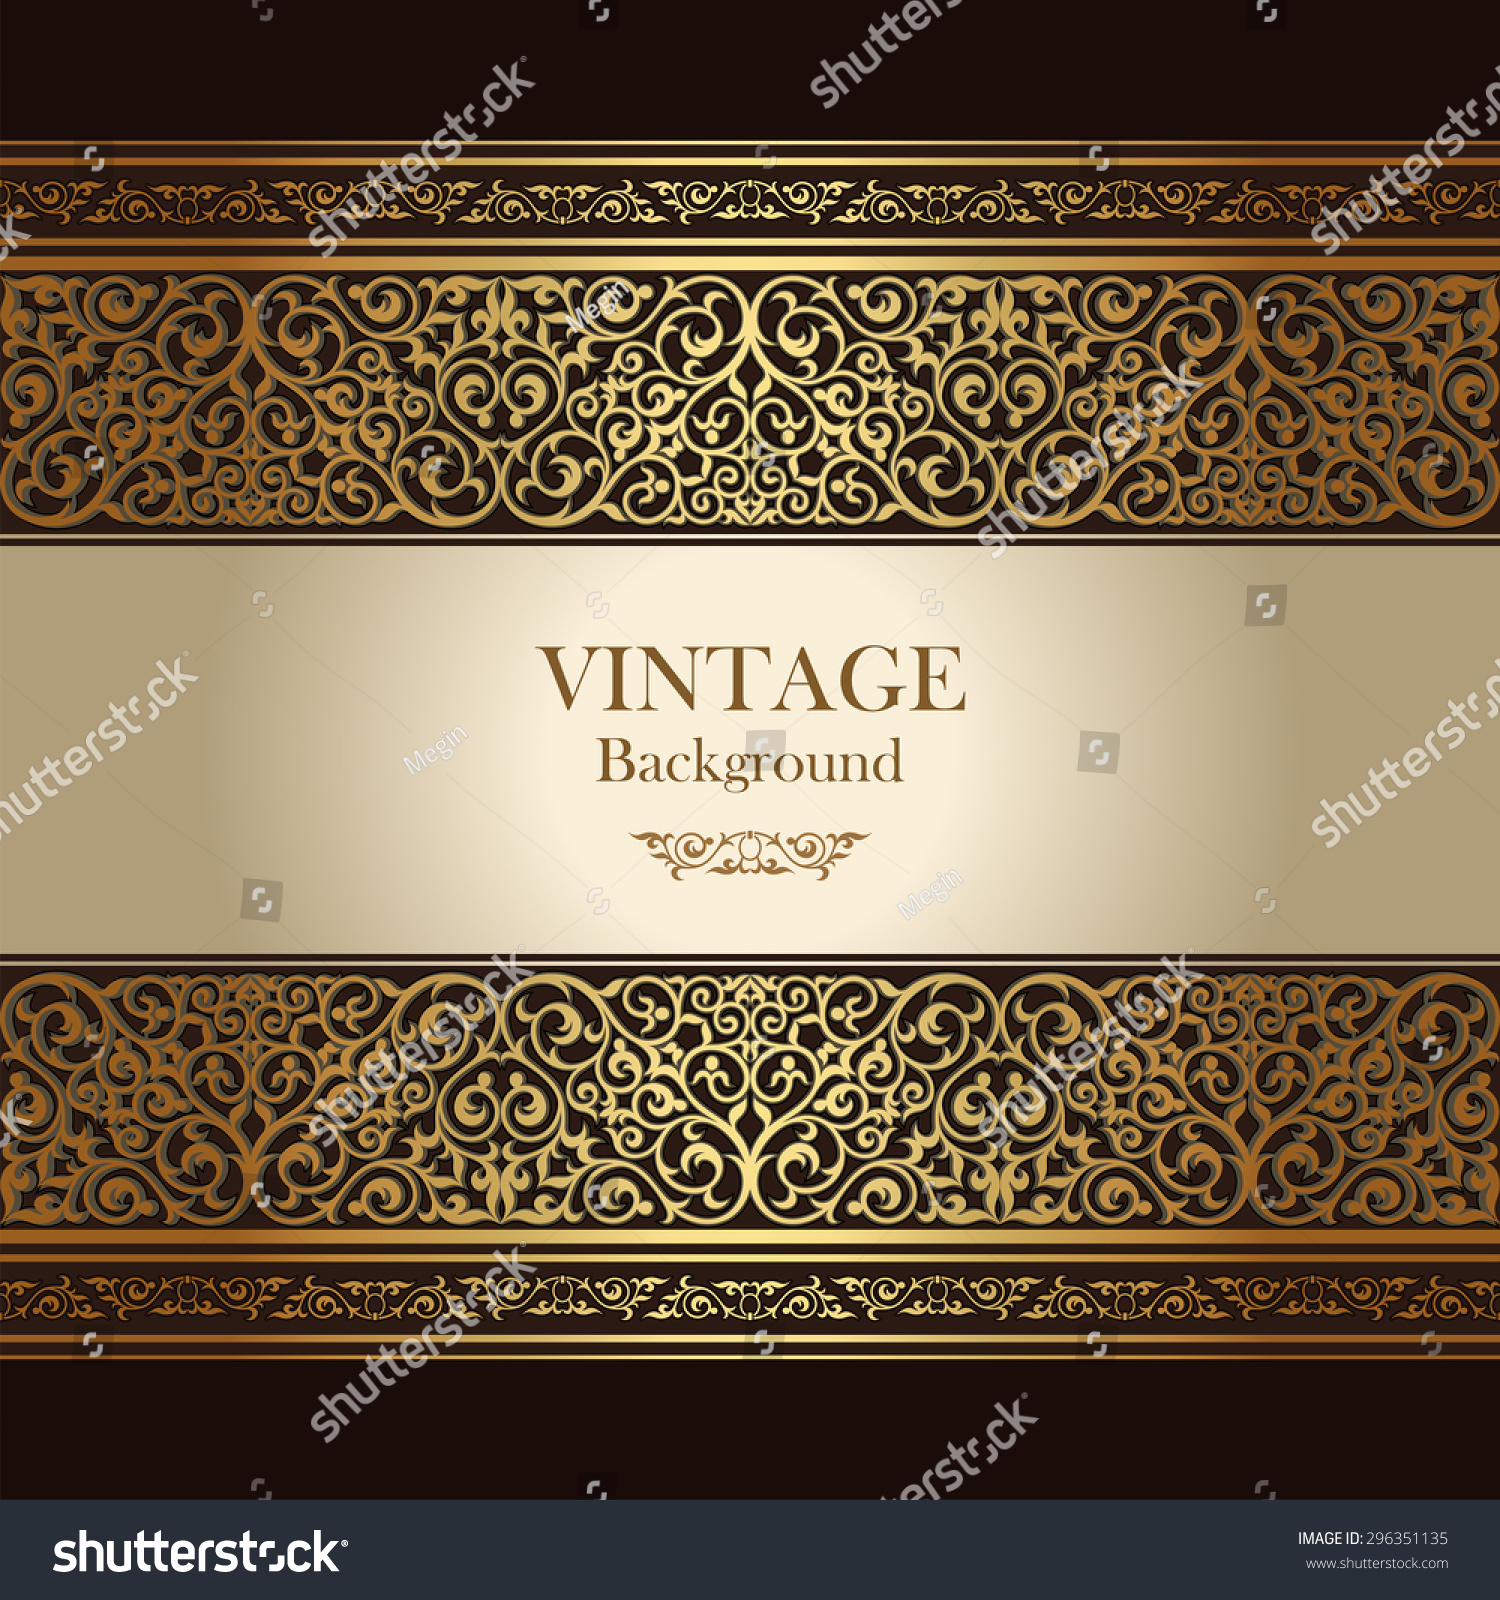 Vintage Background Islamic Style Ornament Ornamental Stock